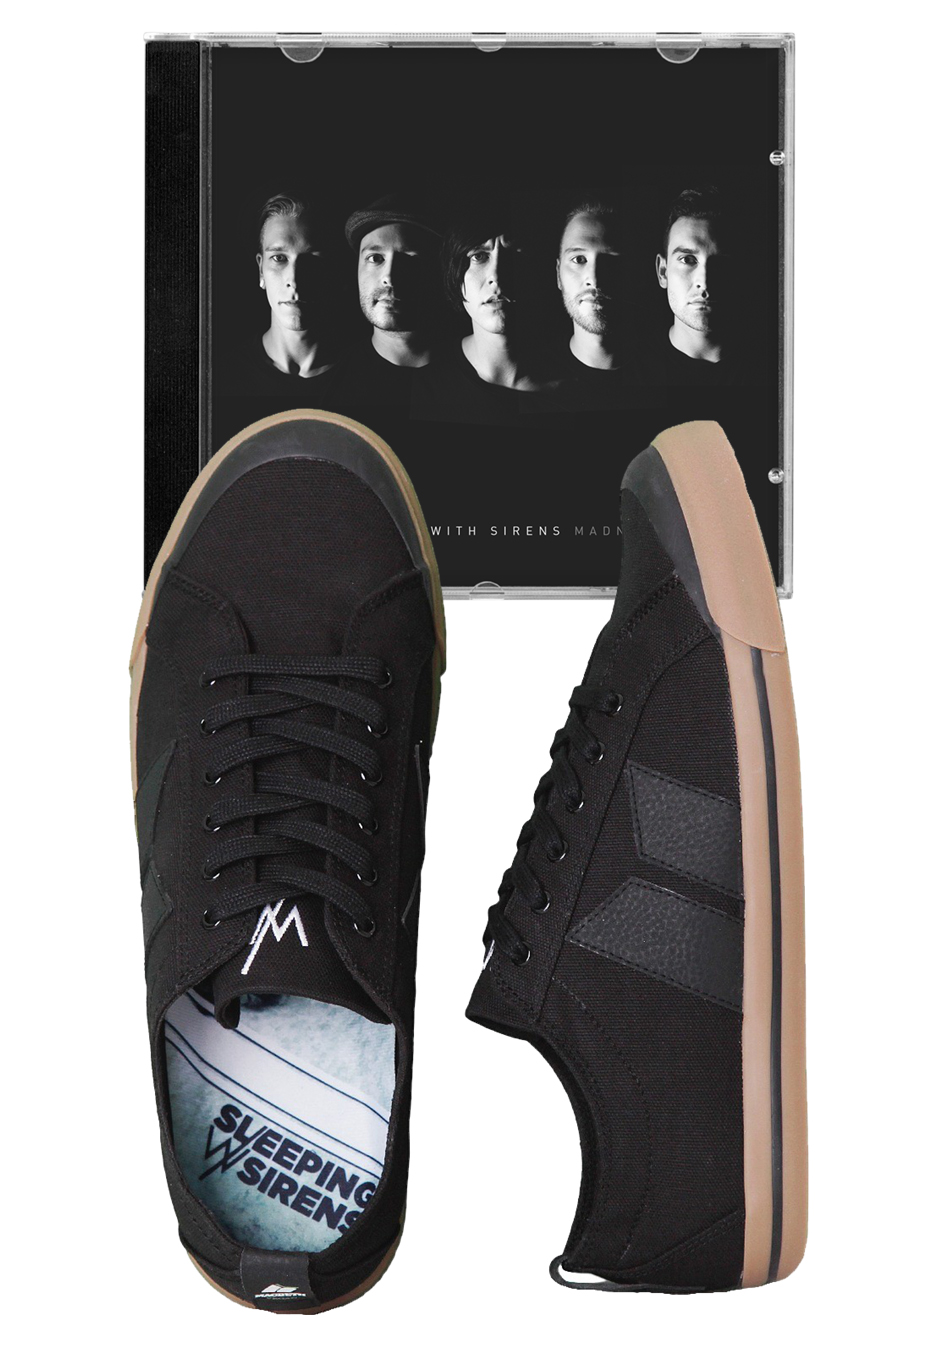 Sleeping With Sirens Shoes For Sale